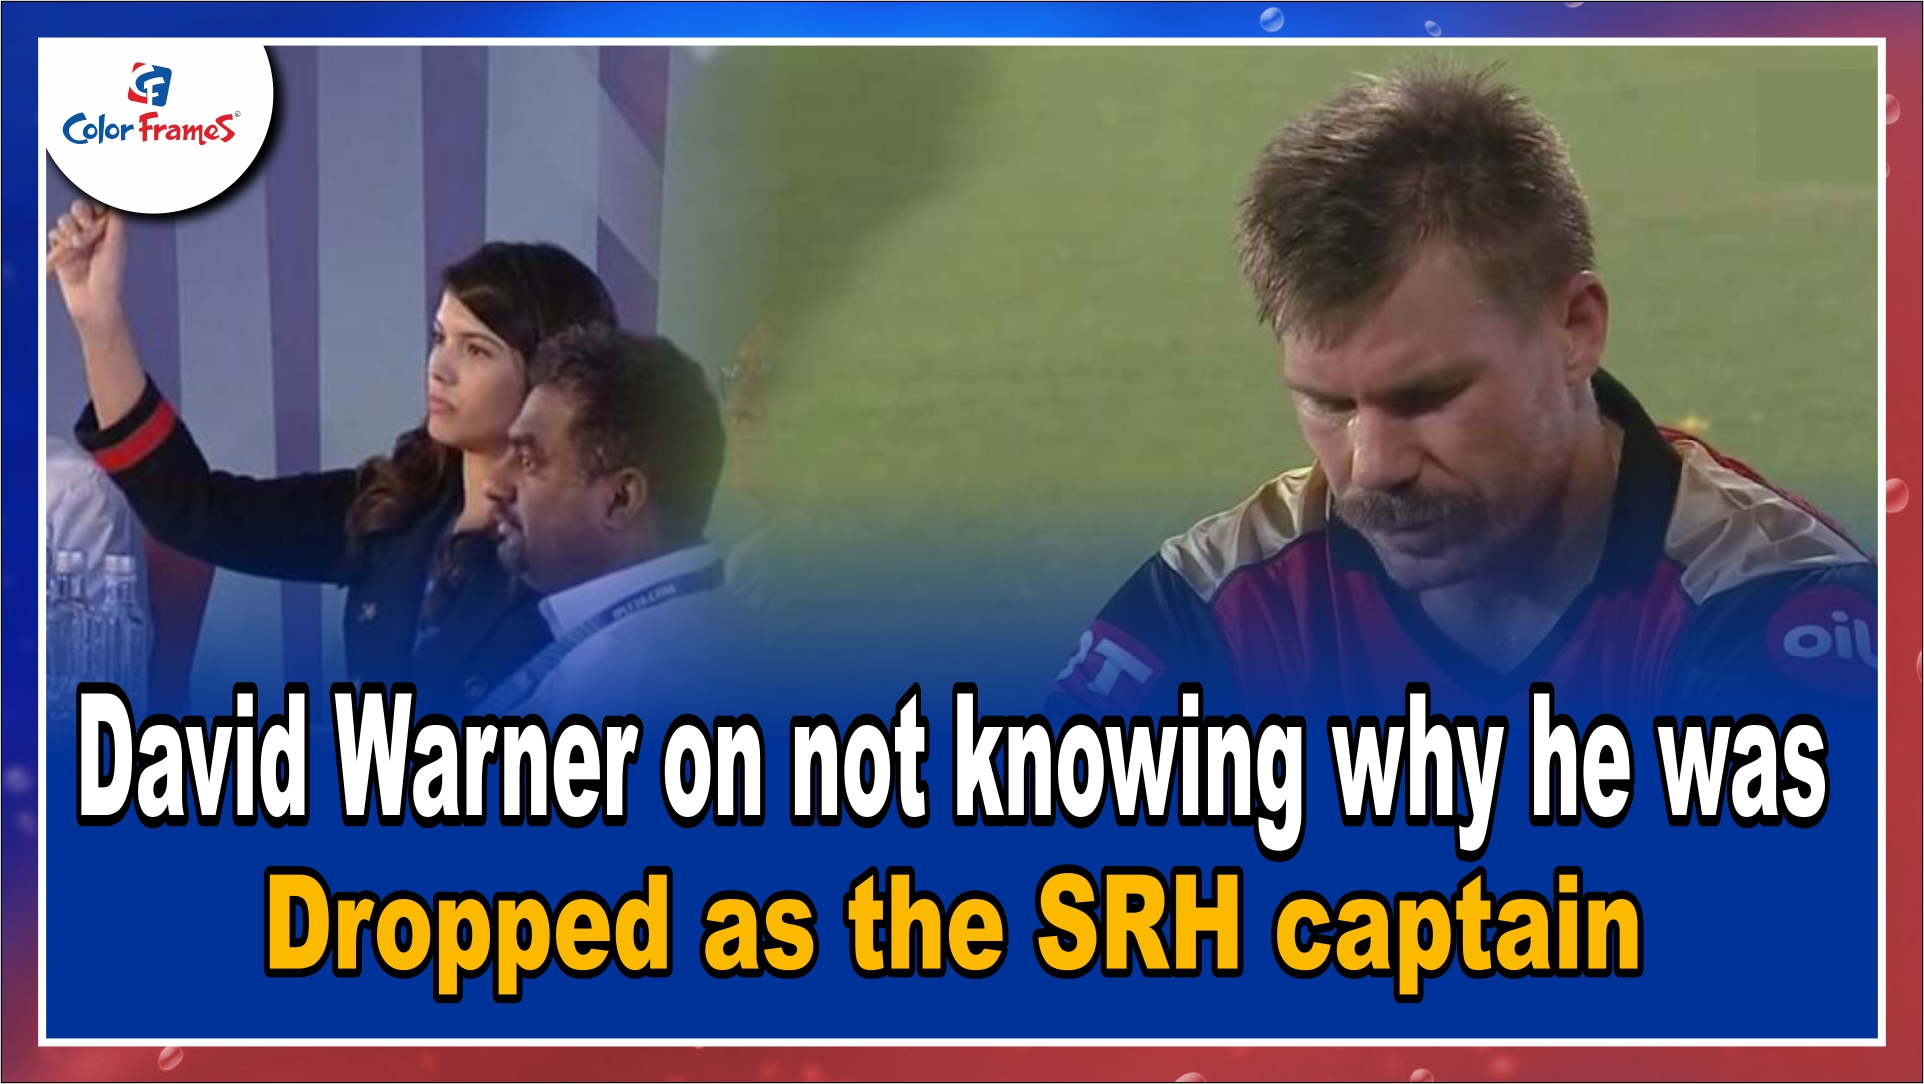 David Warner on not knowing why he was dropped as the SRH captain